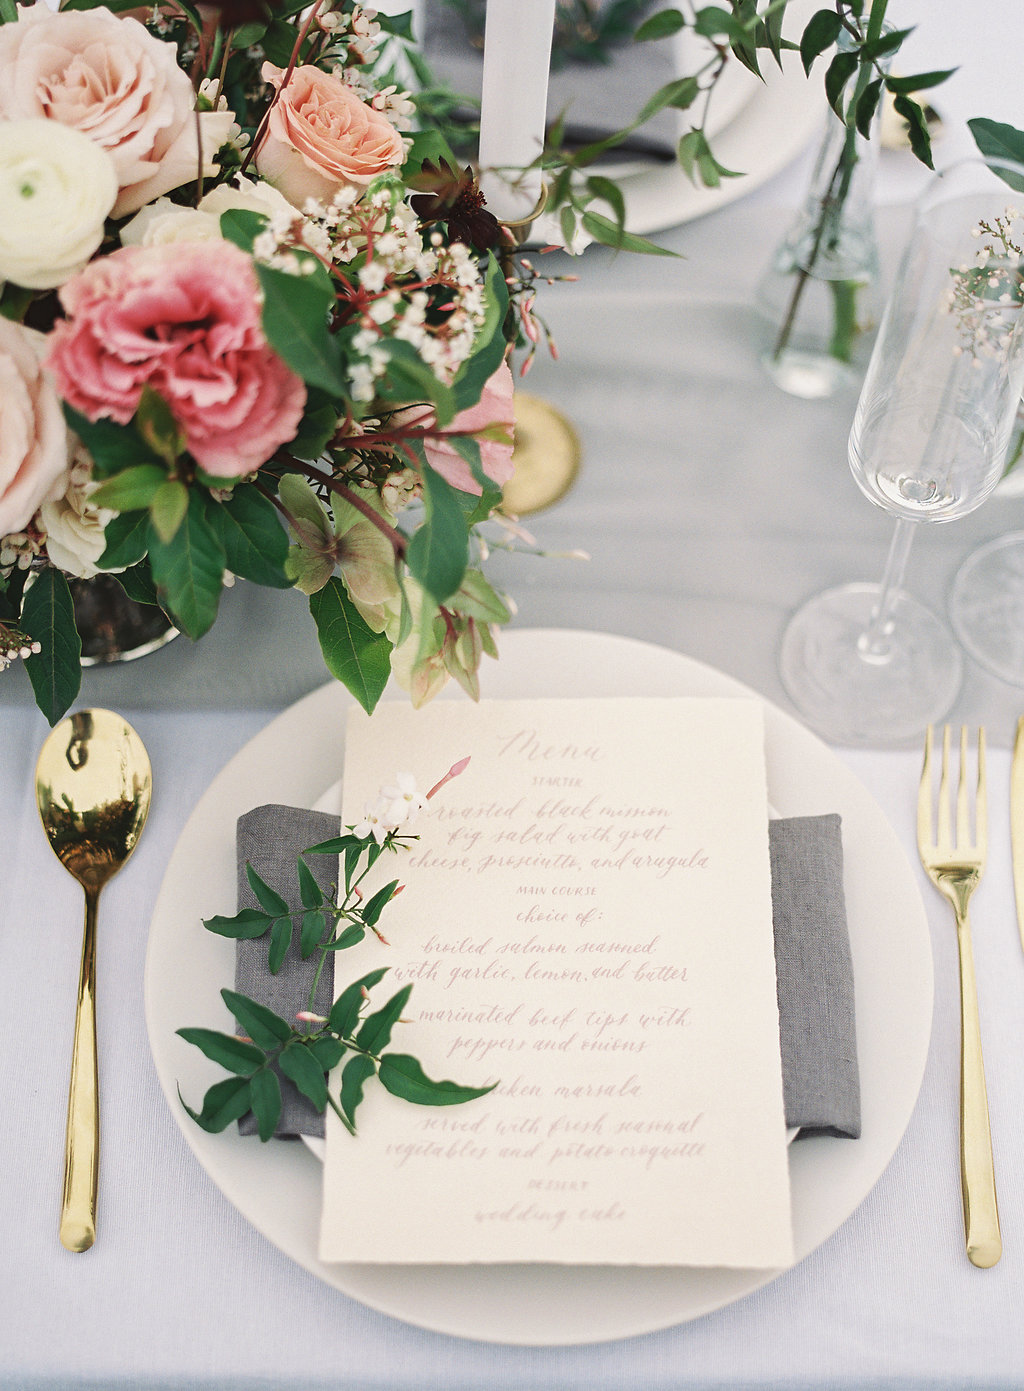 Mount Tamalpais Styled Shoot Menu